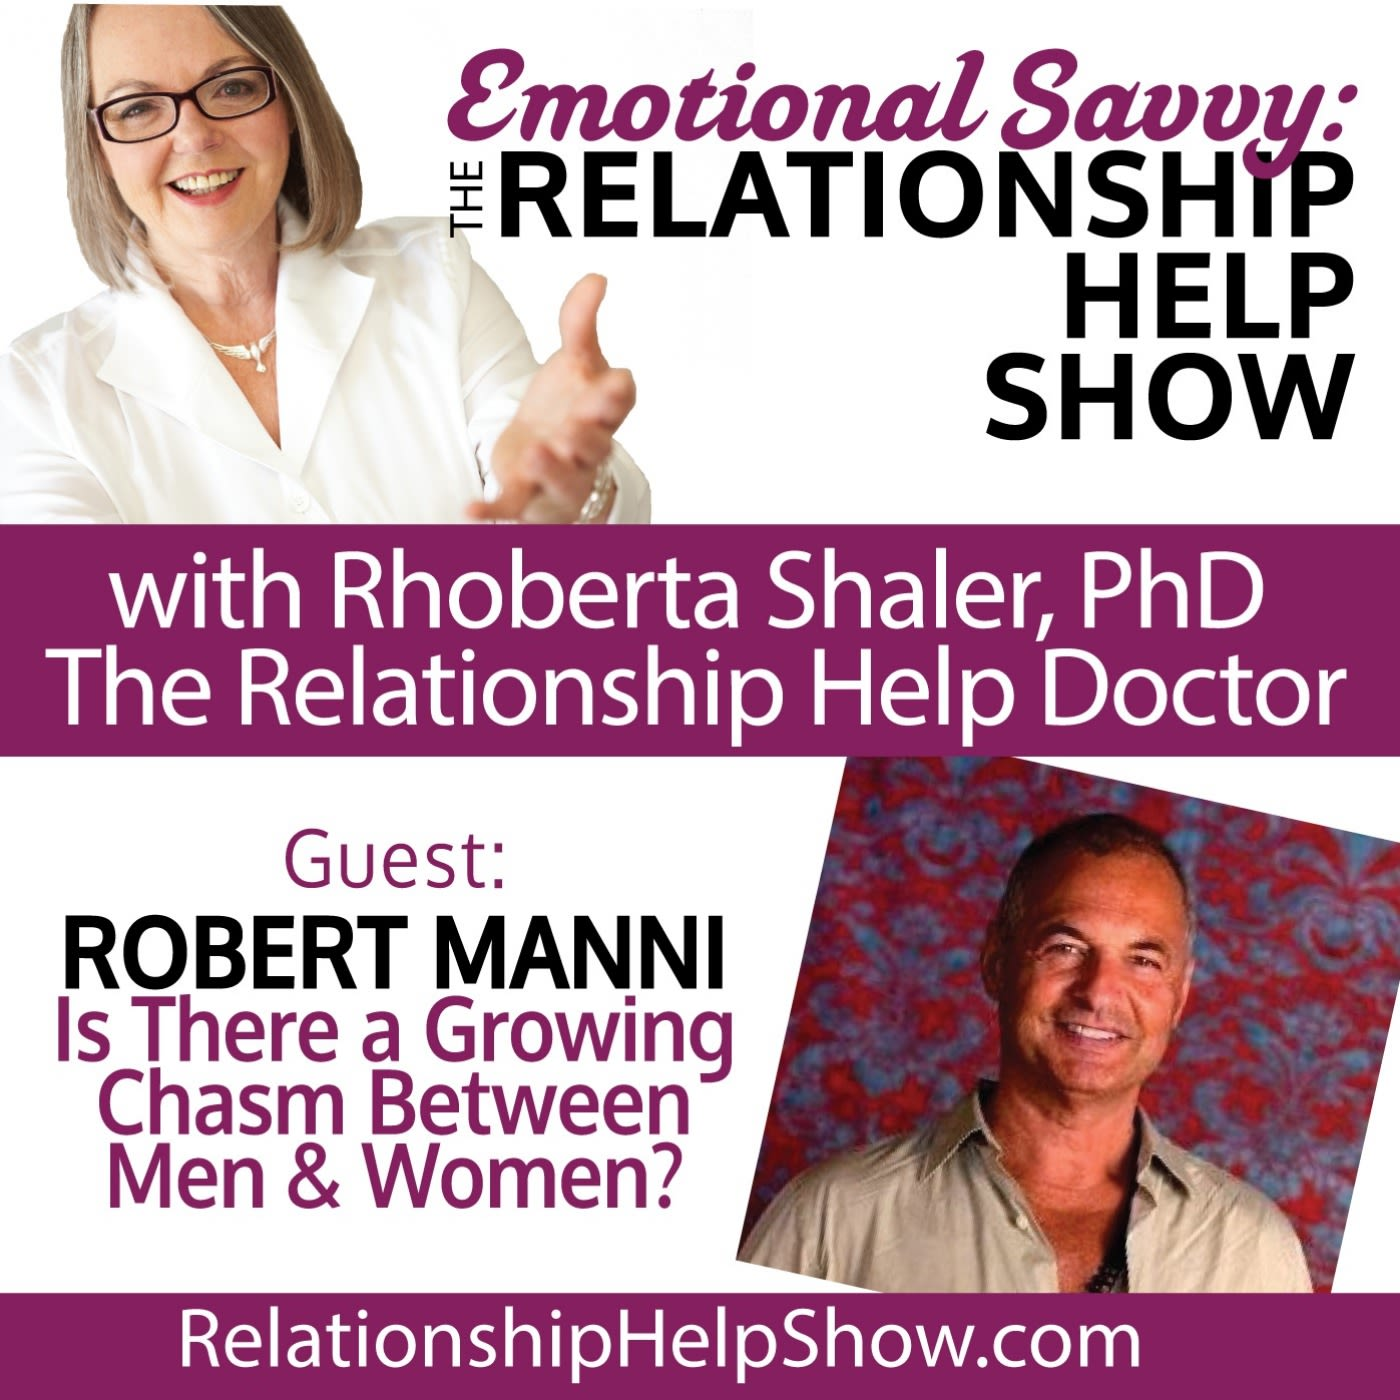 Is There a Growing Chasm Between Men & Women?  GUEST: Robert Manni